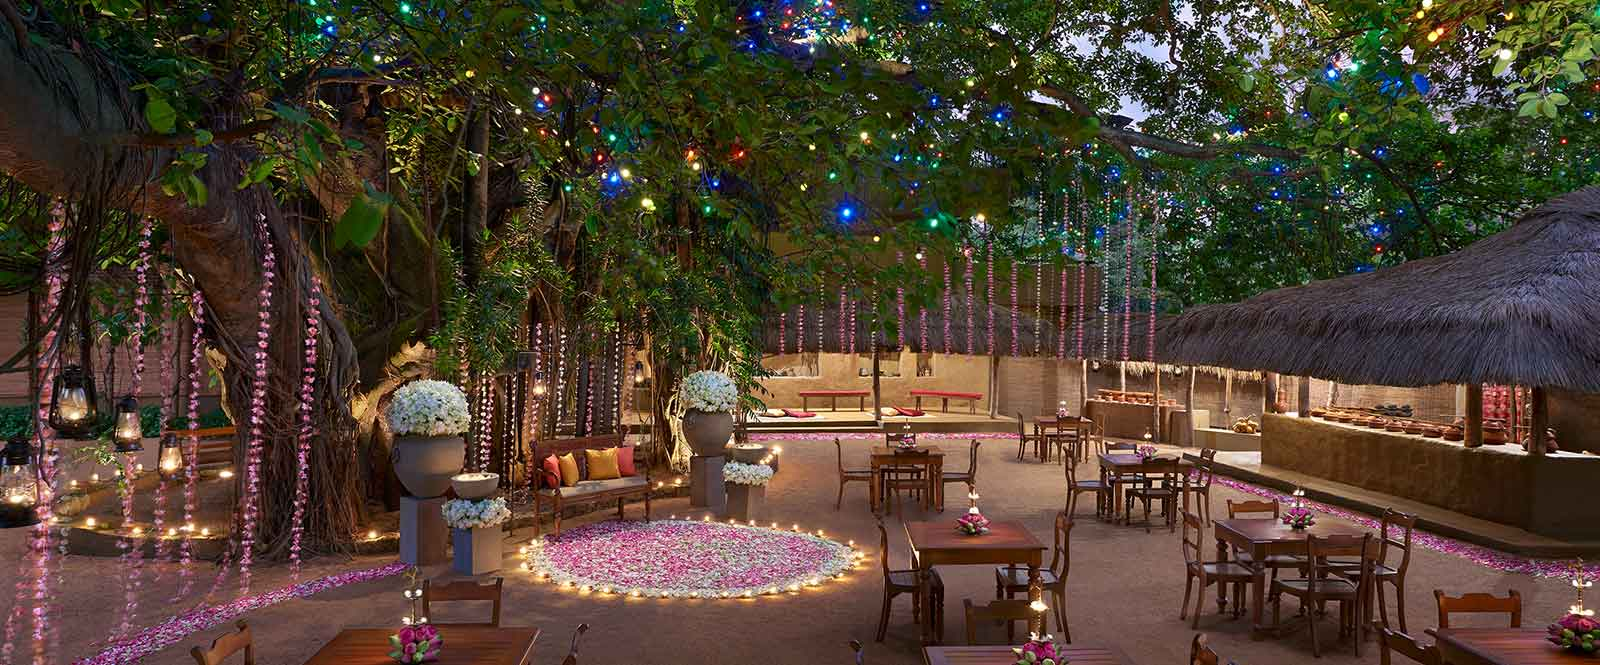 Outdoor Dining at a Hotel in Colombo